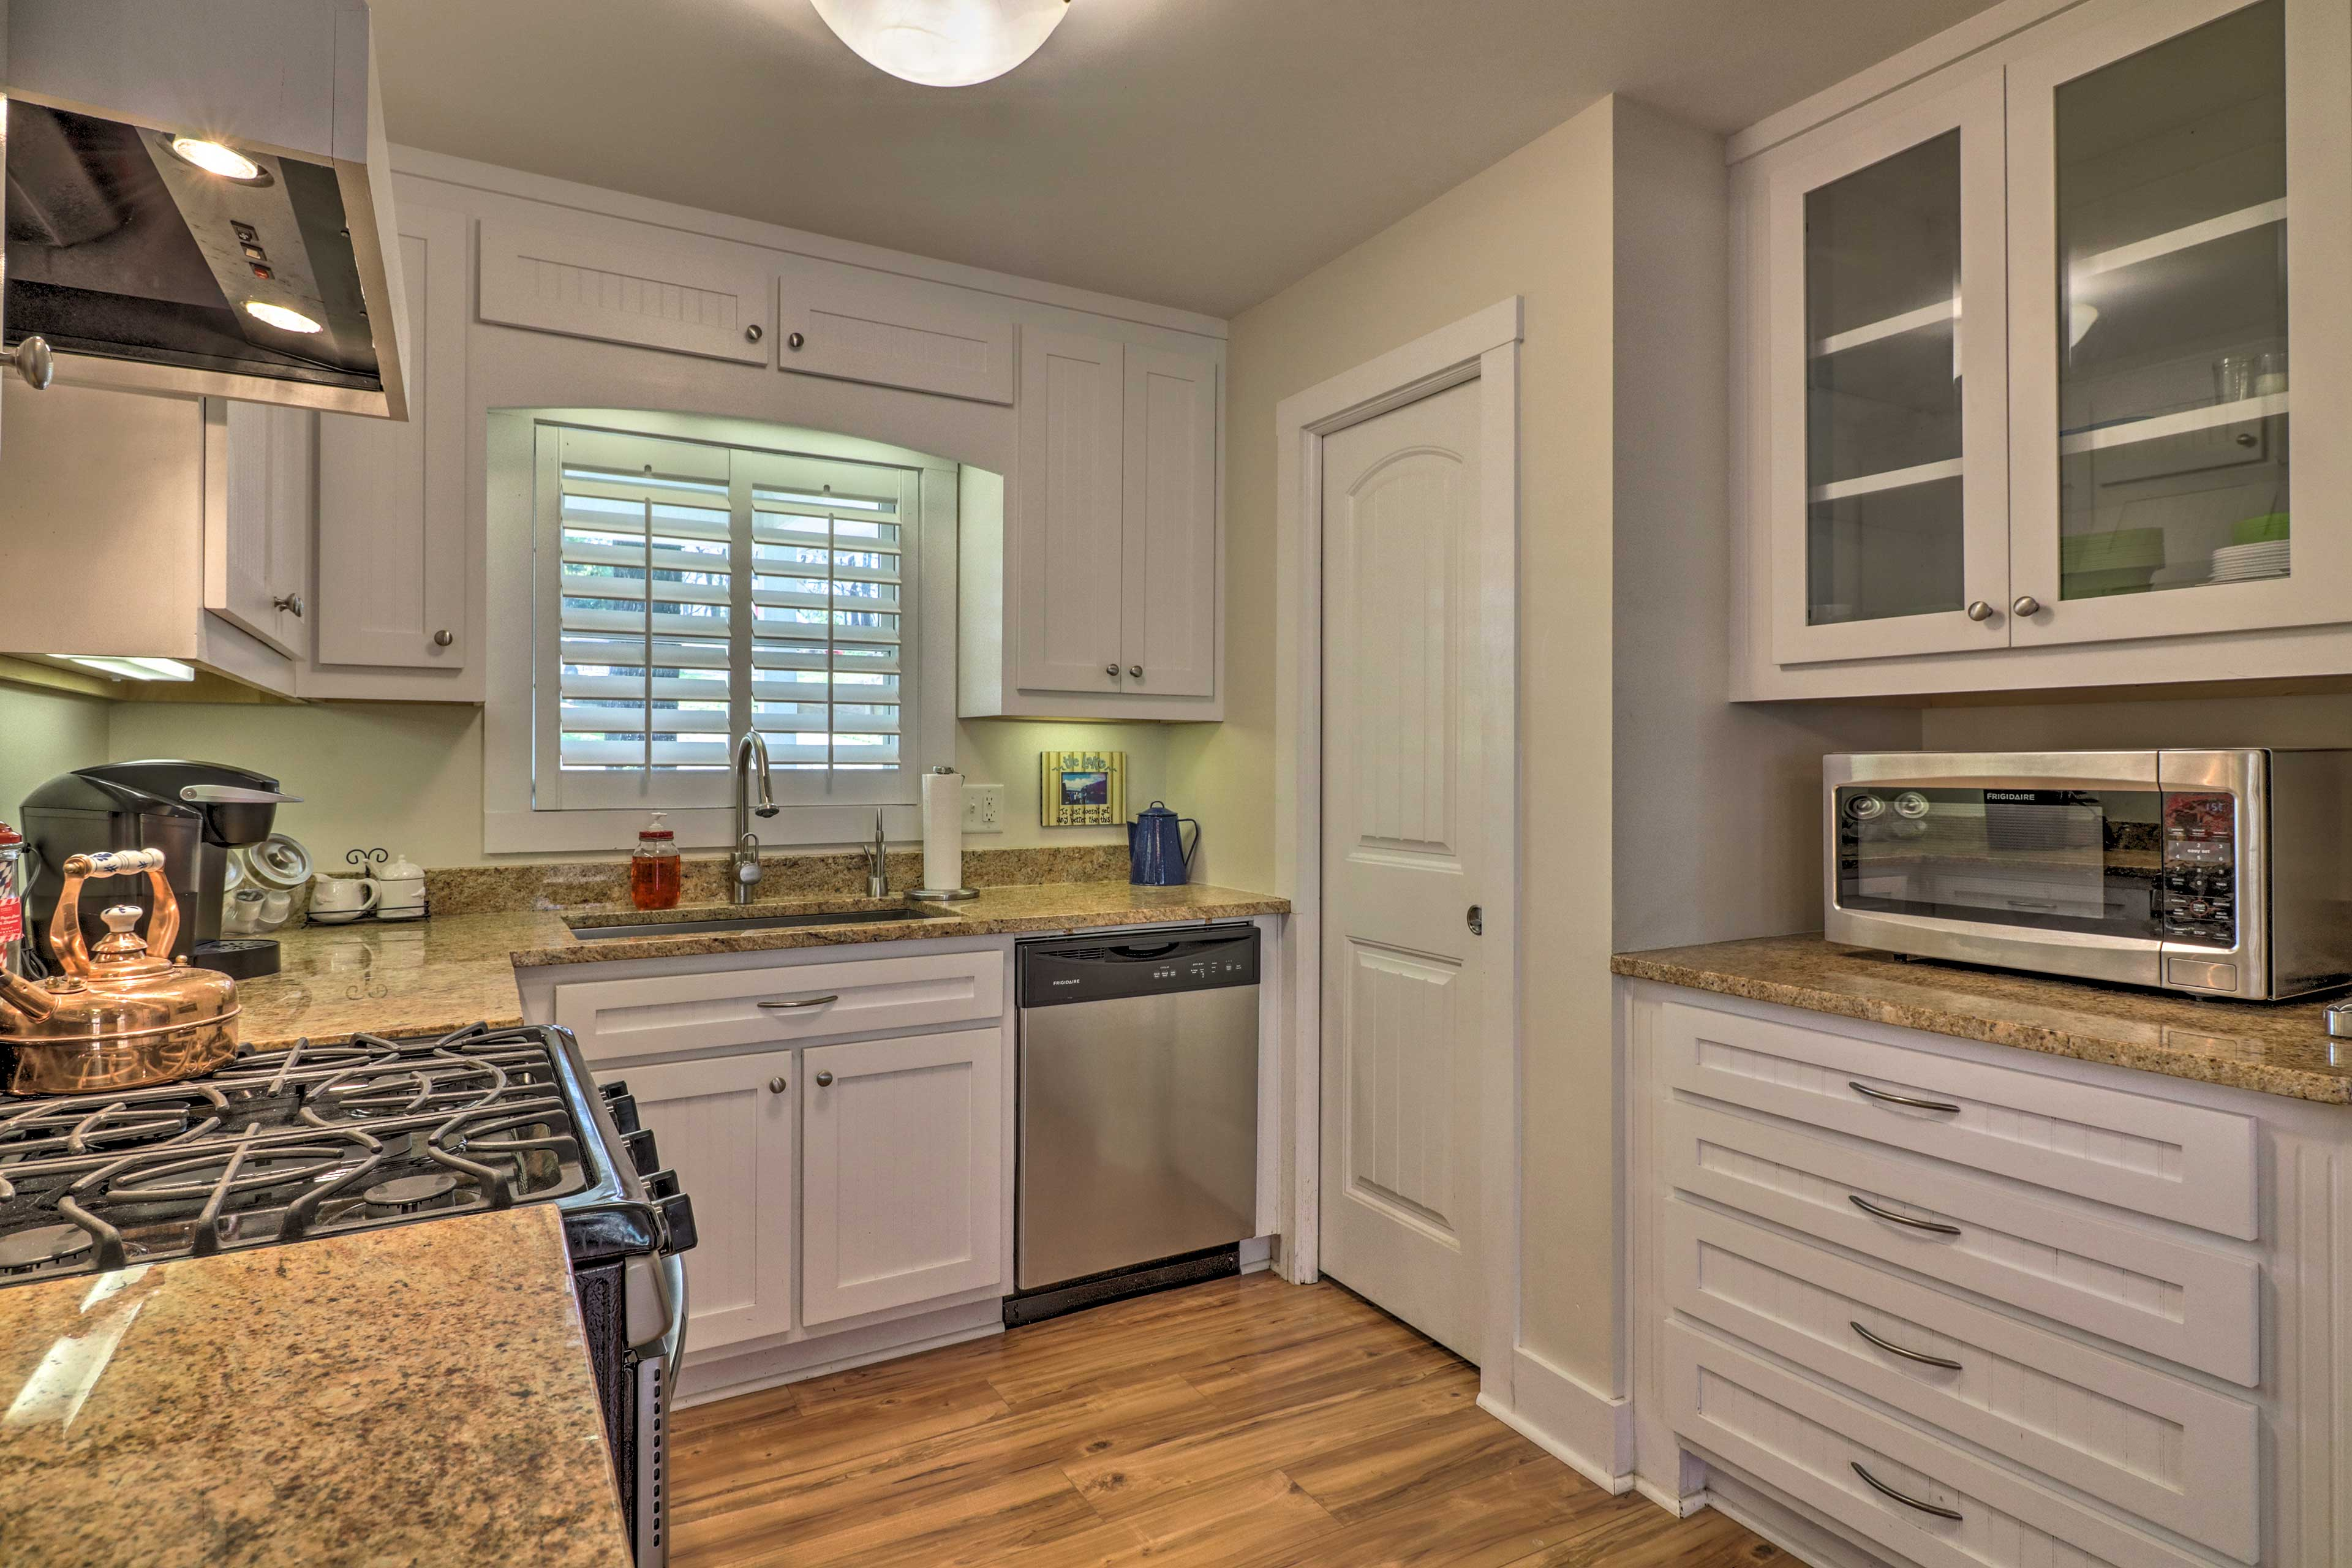 A large sink and dishwasher make cleanup a breeze.